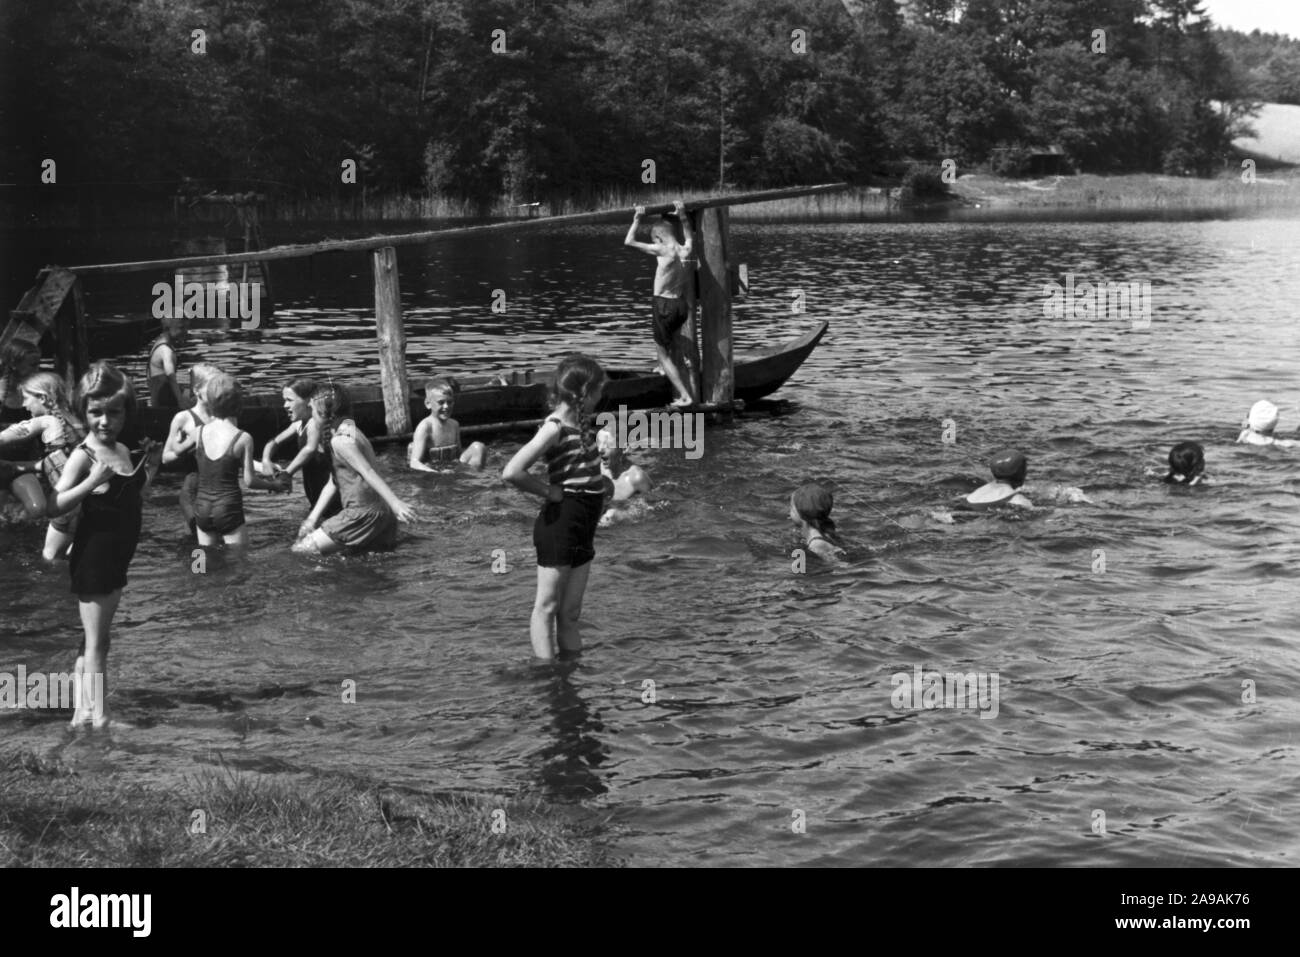 Pupils of the rural school Tiefensee during swimming lessons, Germany 1930s. Stock Photo